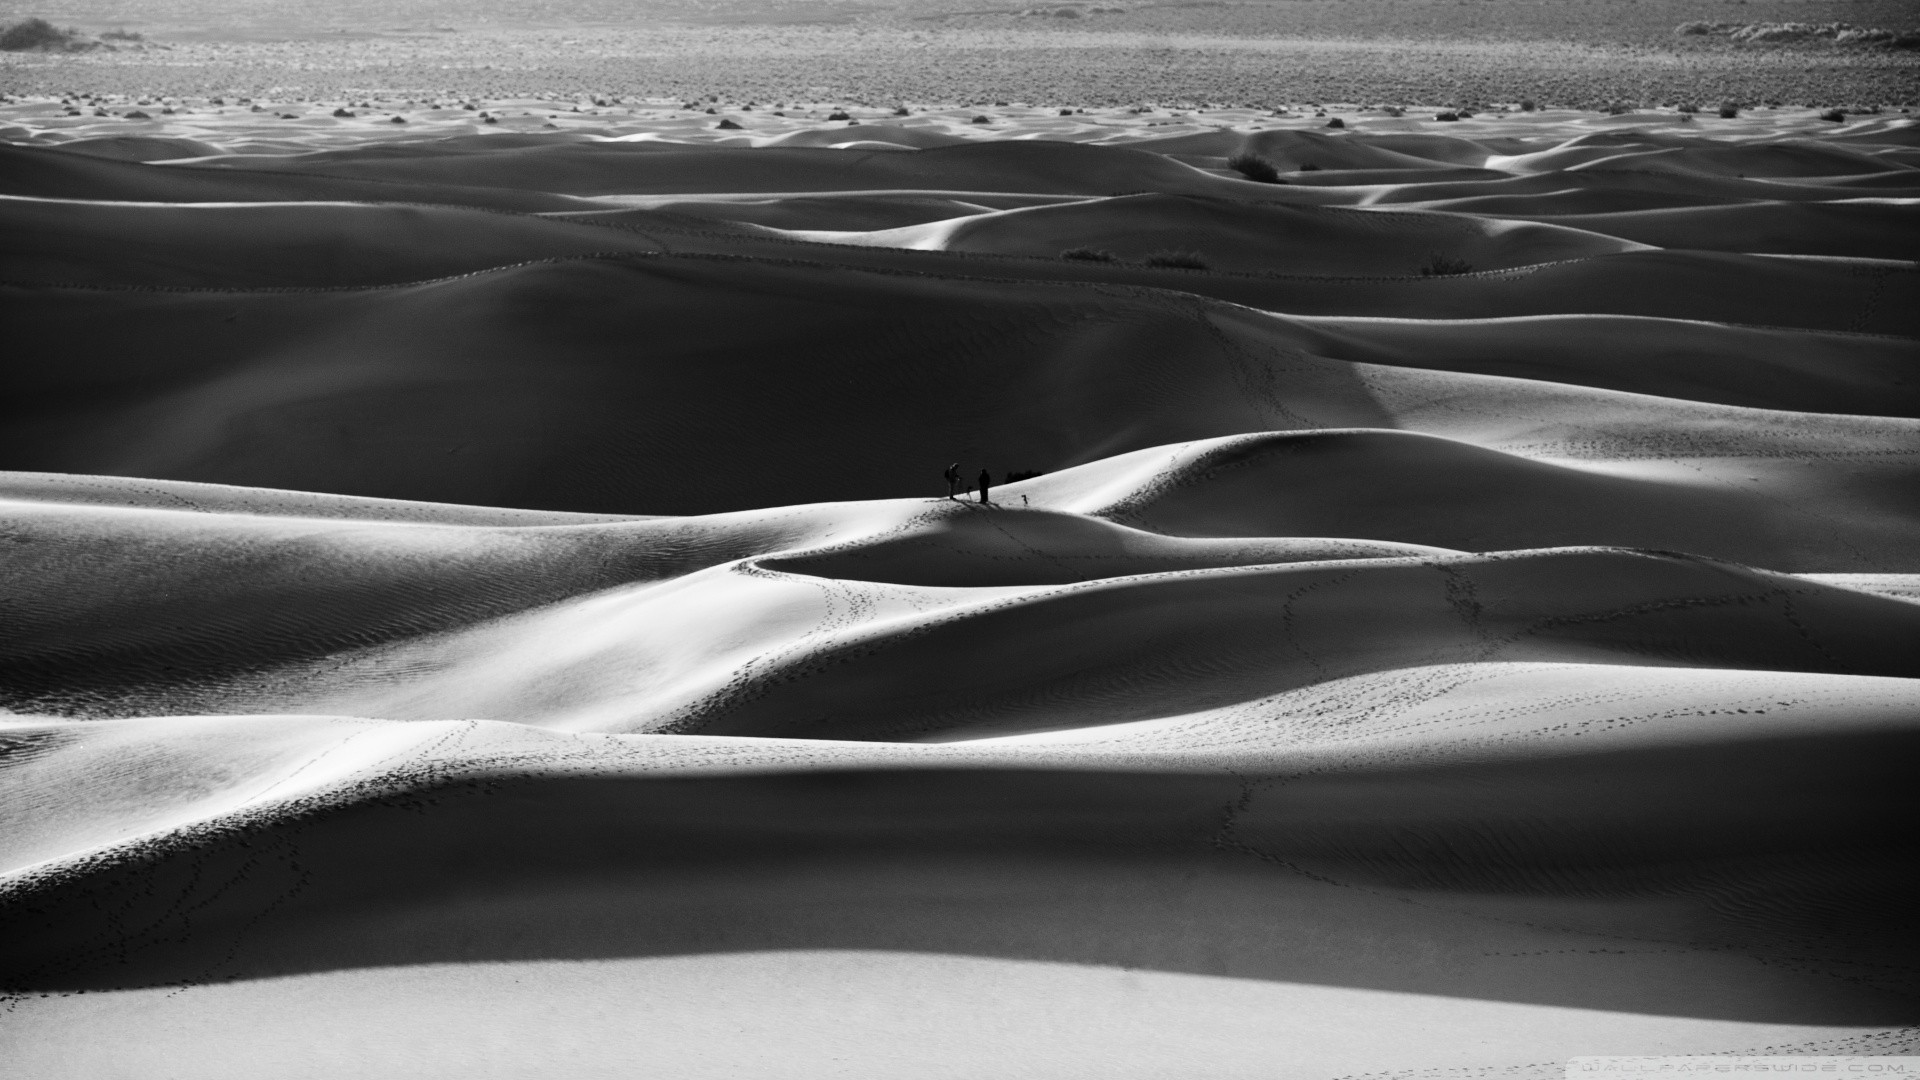 Black and white nature sand desert wallpaper 1920x1080